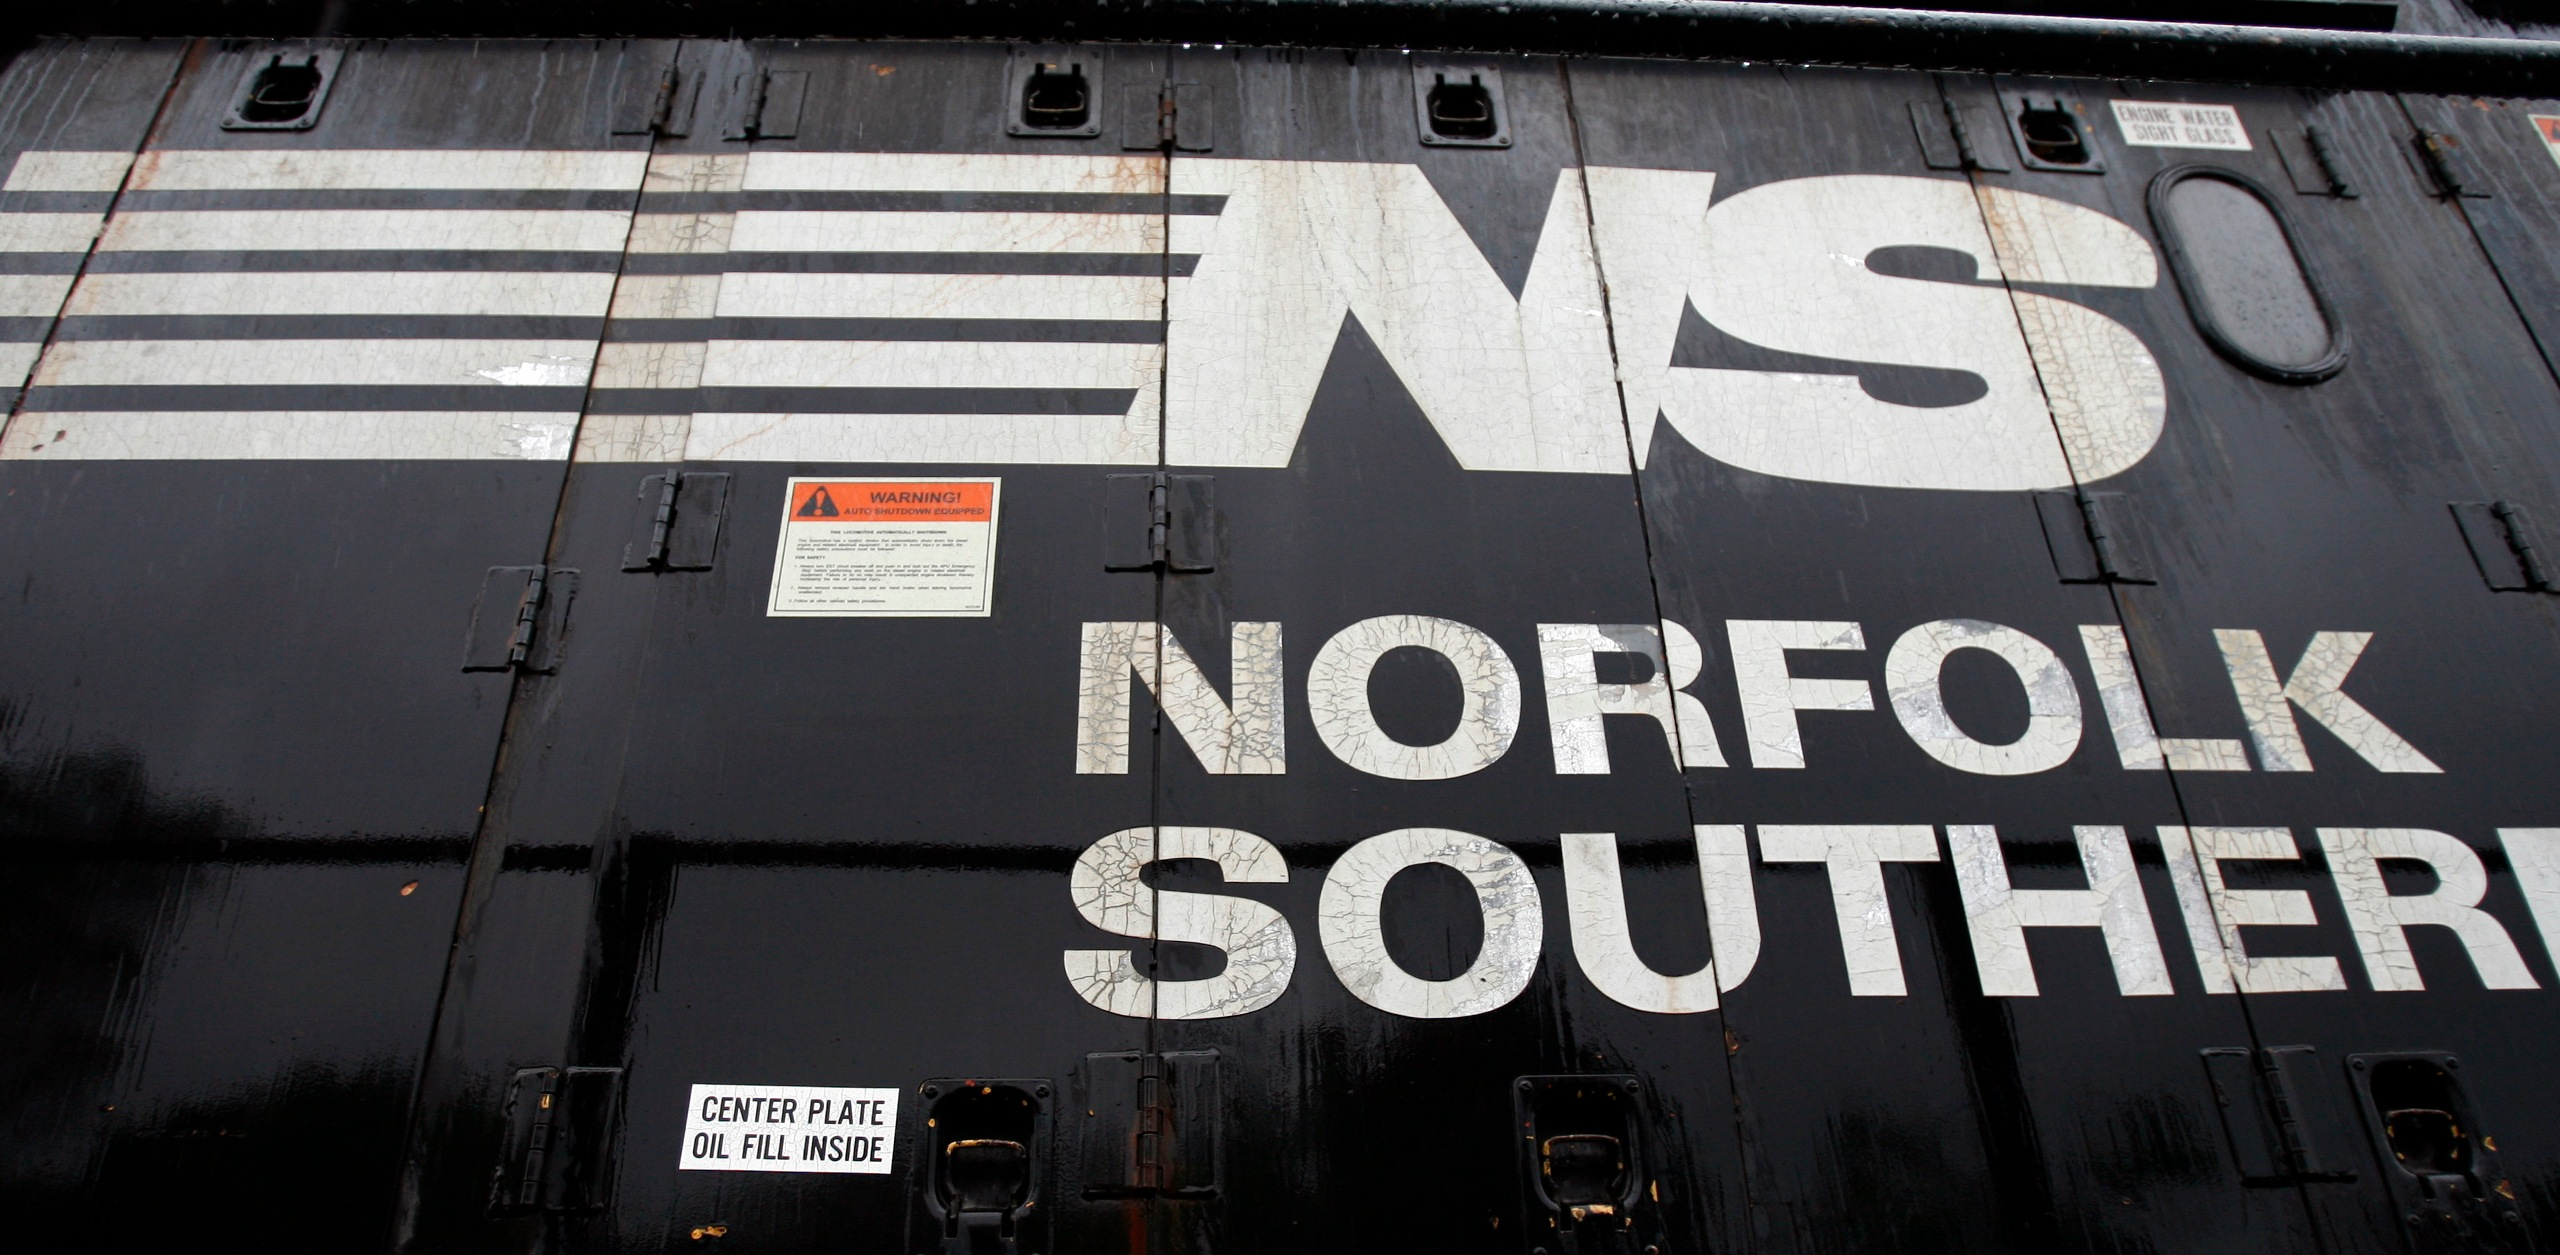 Earns Norfolk Southern_294802